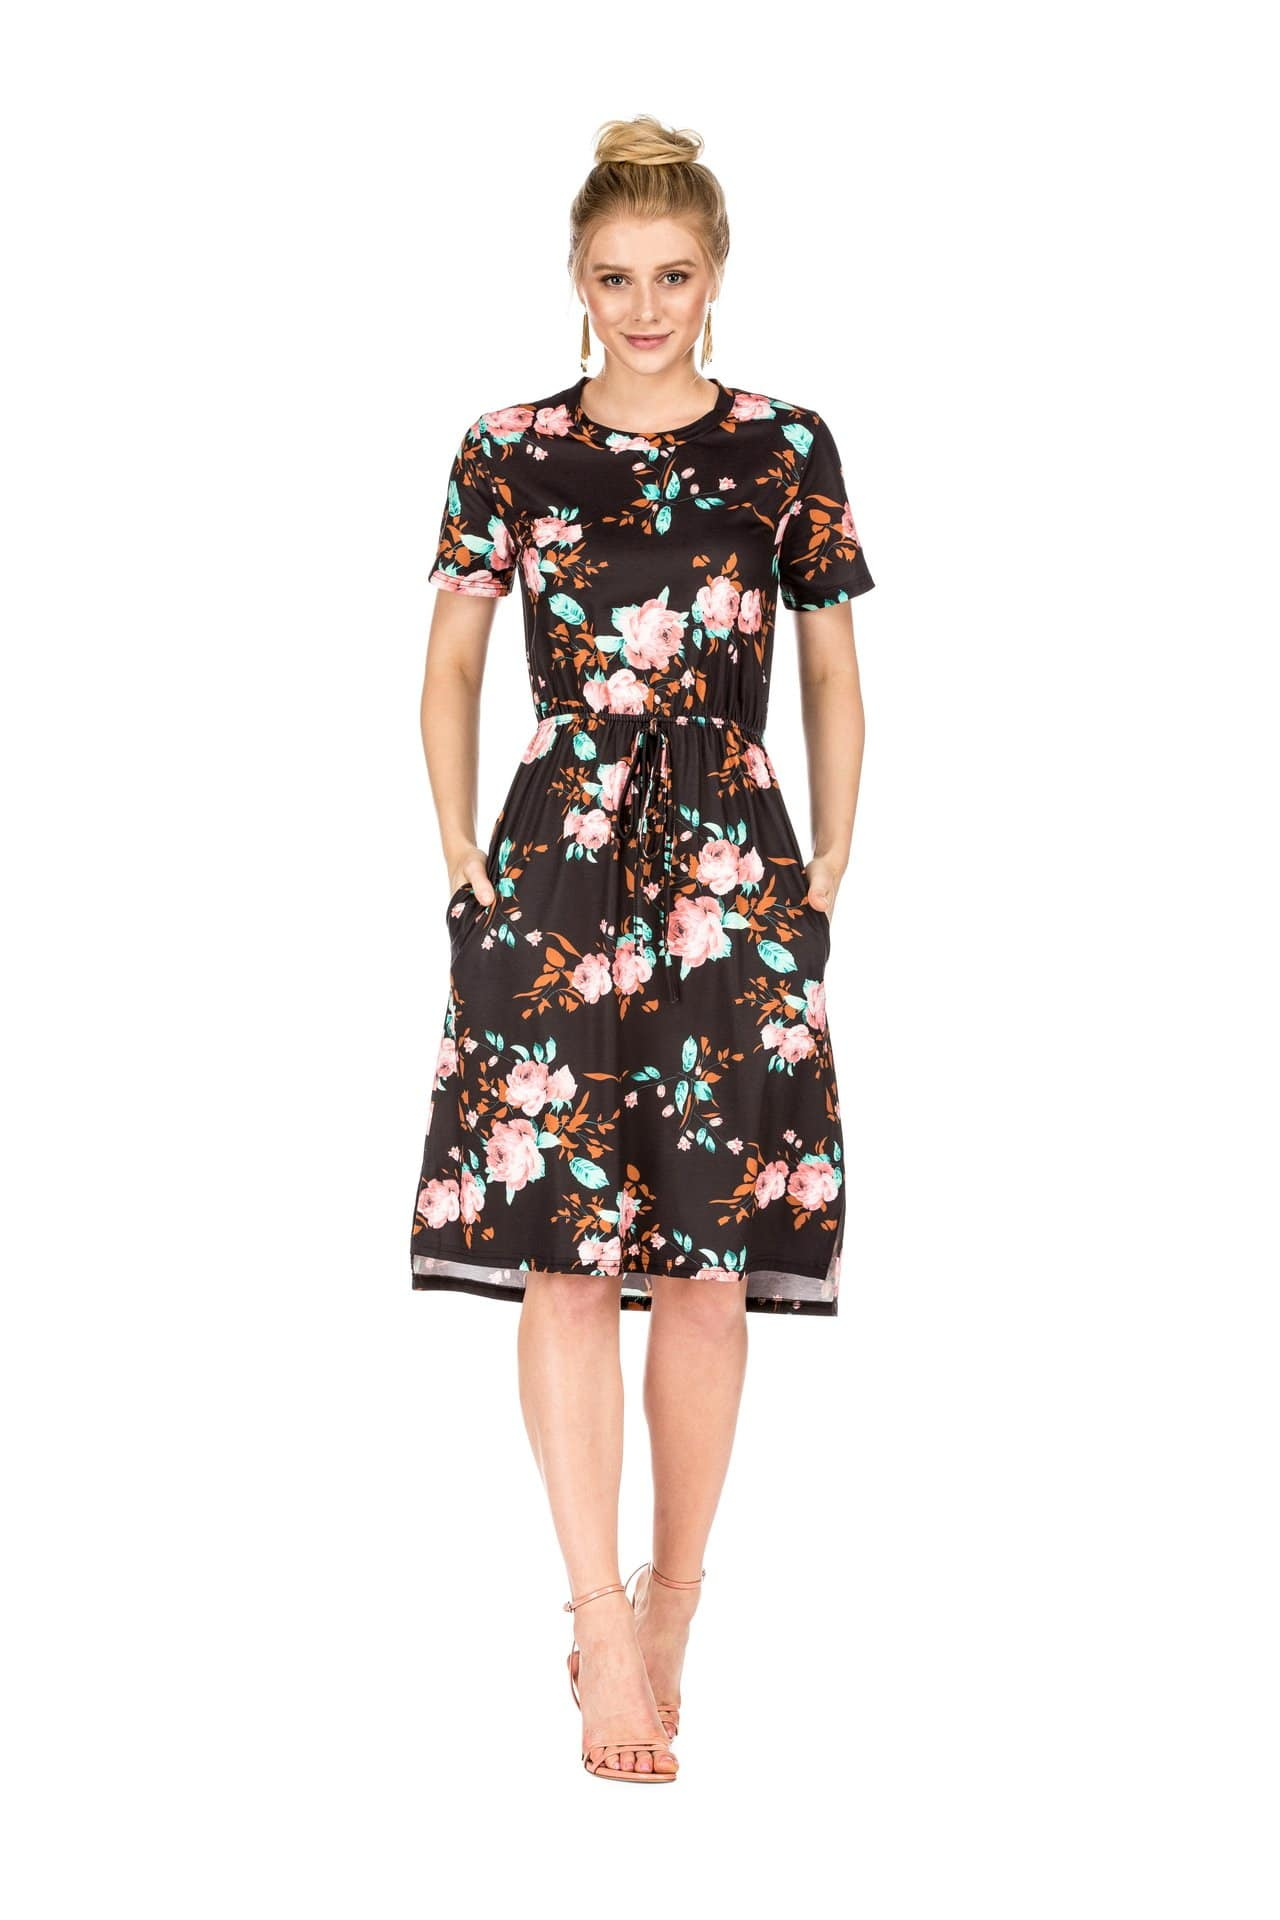 DAILYHAUTE Women's dress BLACK / S Haute Edition Women's Floral Casual Mid Dress With Pockets